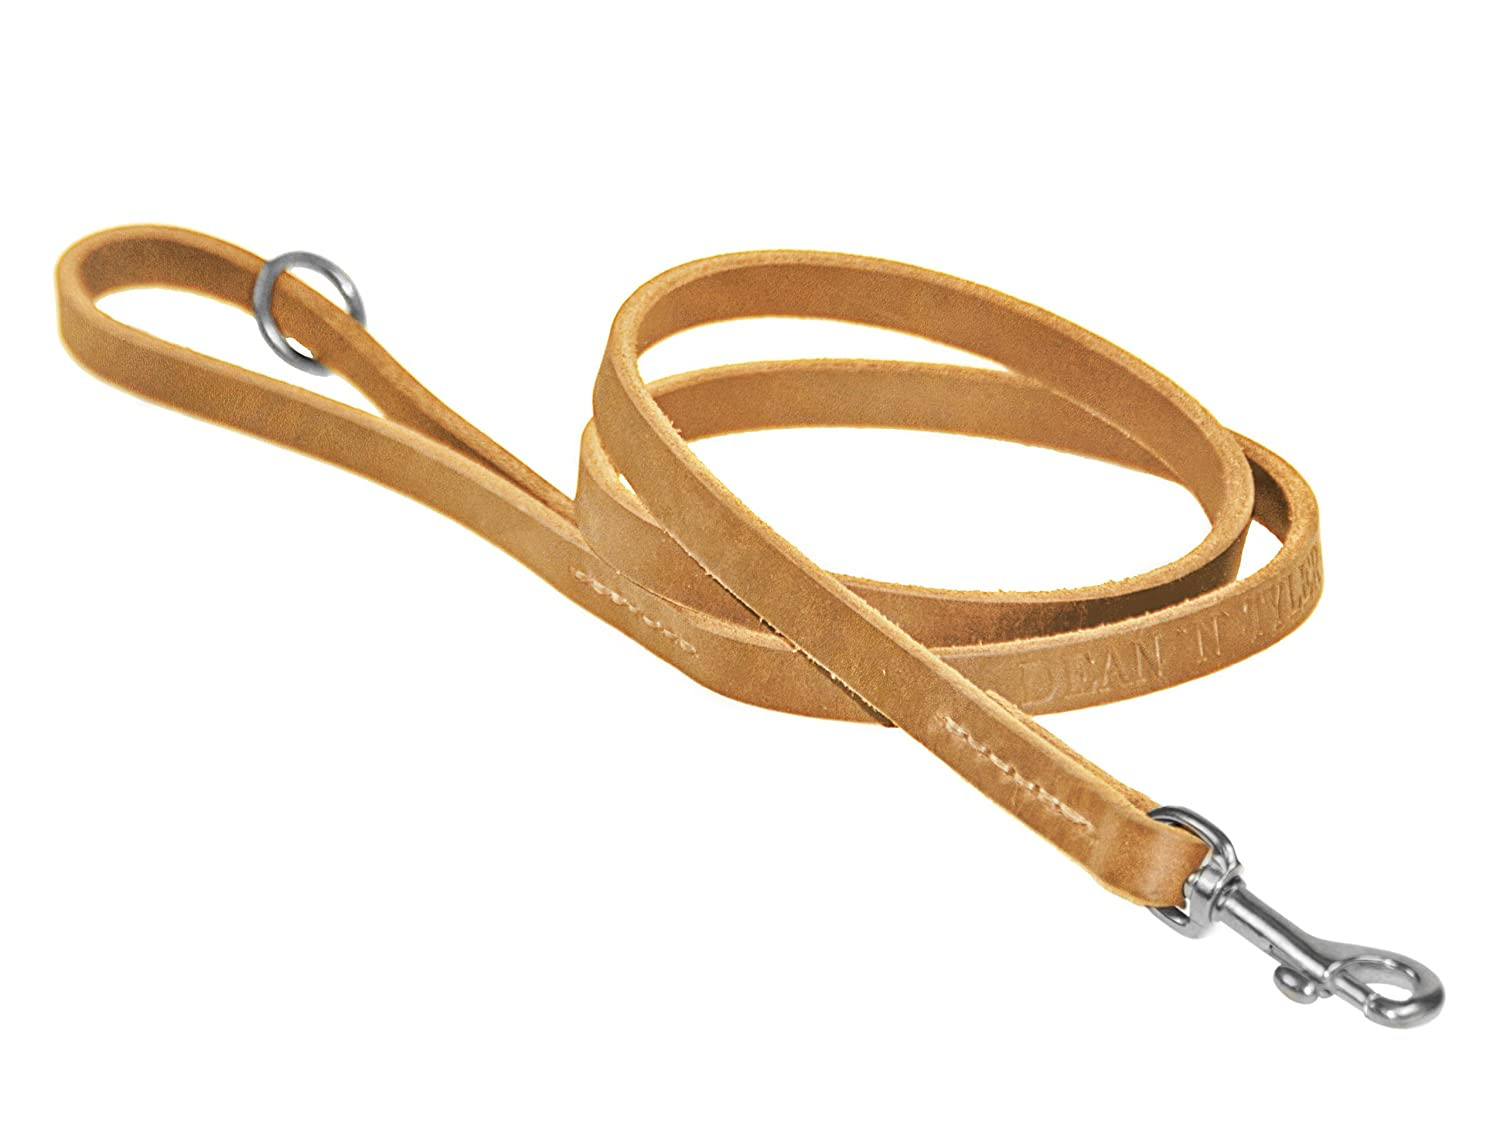 Dean & Tyler No Nonsense Dog Leash with Full Grain Leather and Stainless Steel Hardware, 2-Feet by 1 2-Inch, Tan